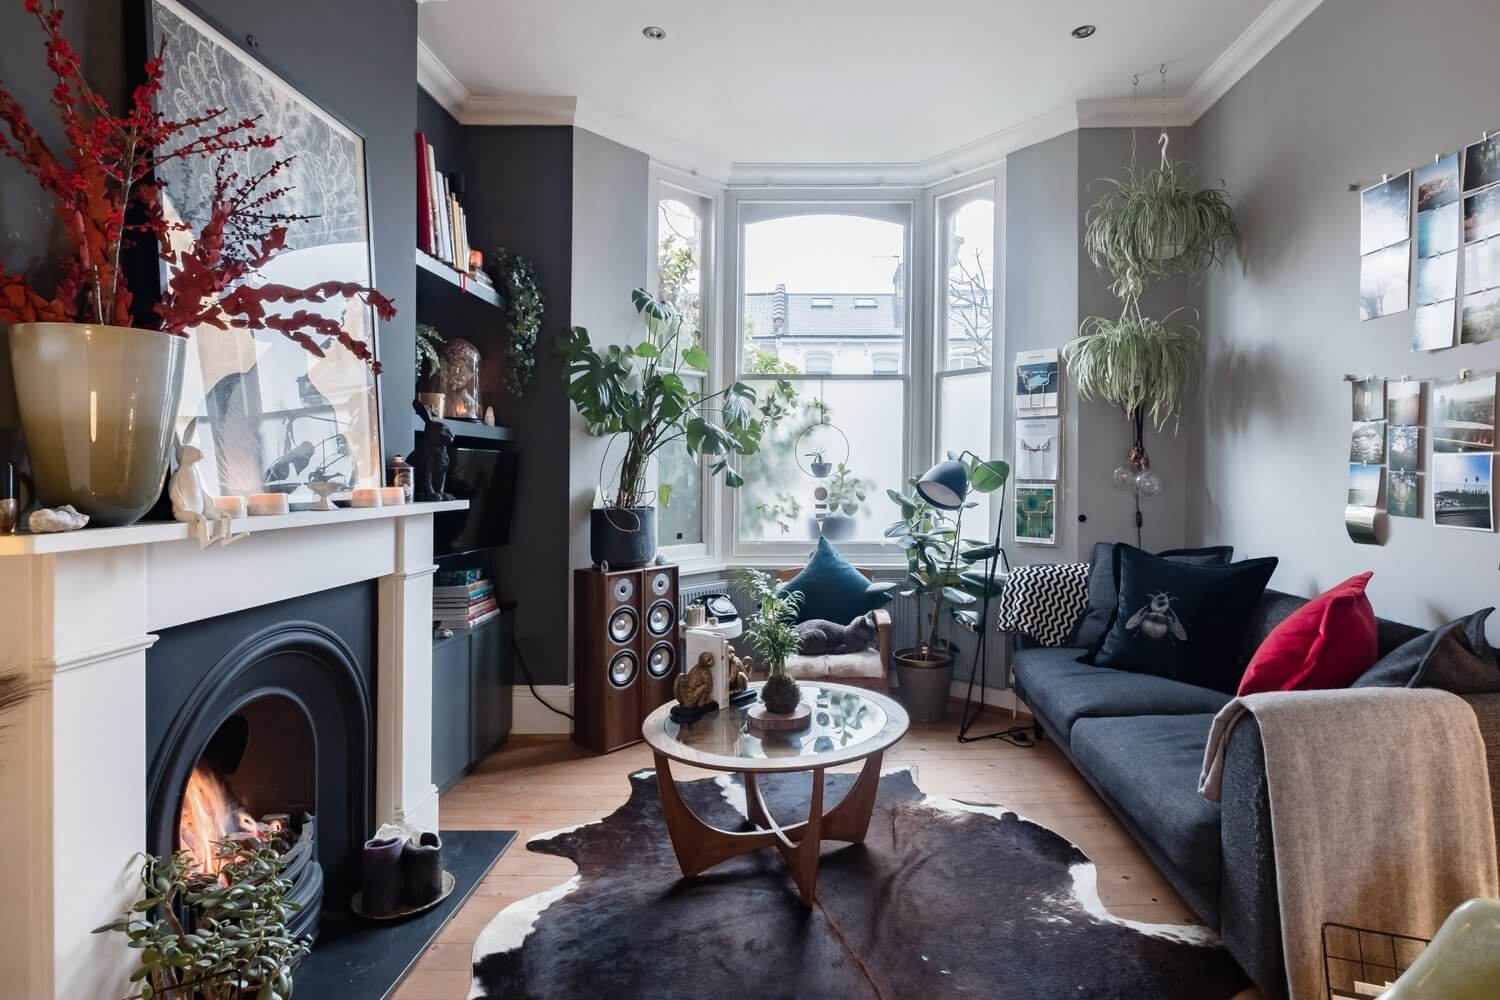 A Cozy Grey London Home Packed With Plants & Art